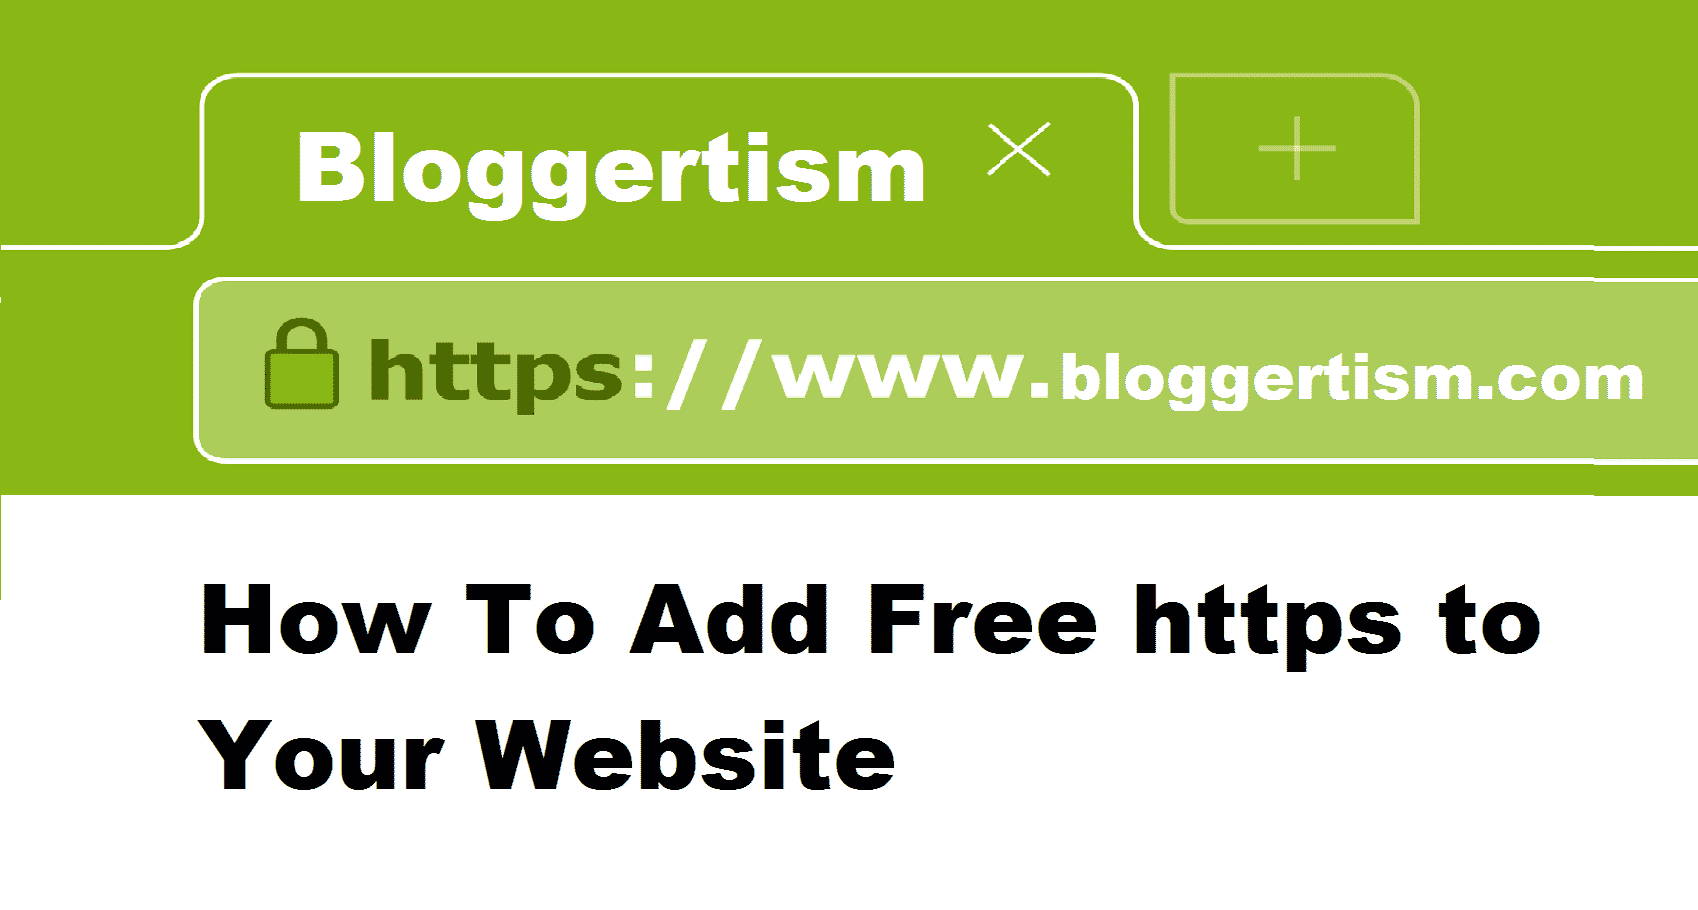 How To Add Free https to Your Website